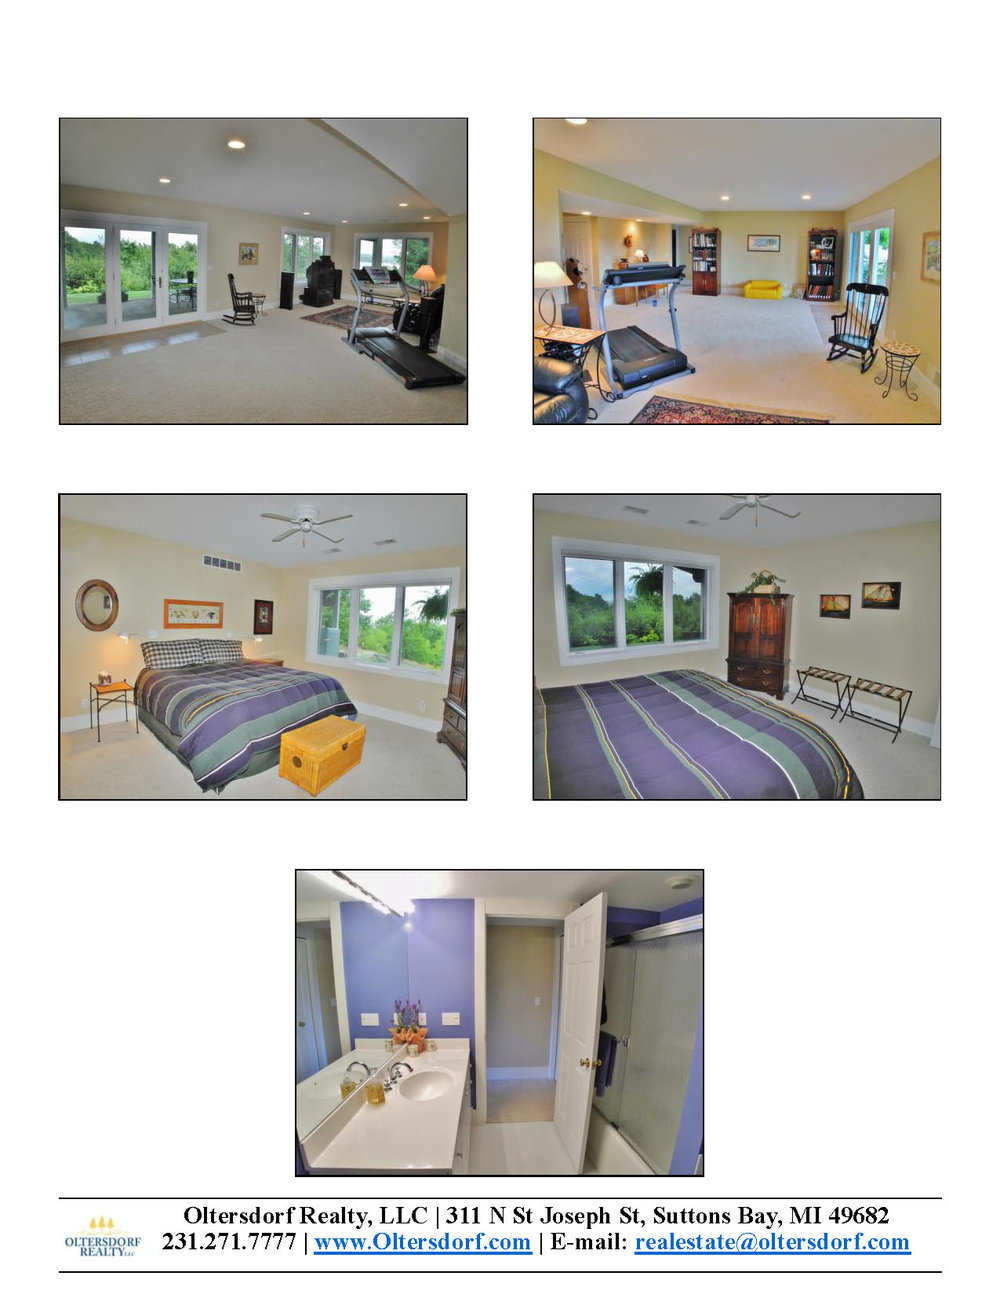 424 N School Hill Court, Suttons Bay real estate for sale by Oltersdorf Realty LLC - Information packet (9).jpg